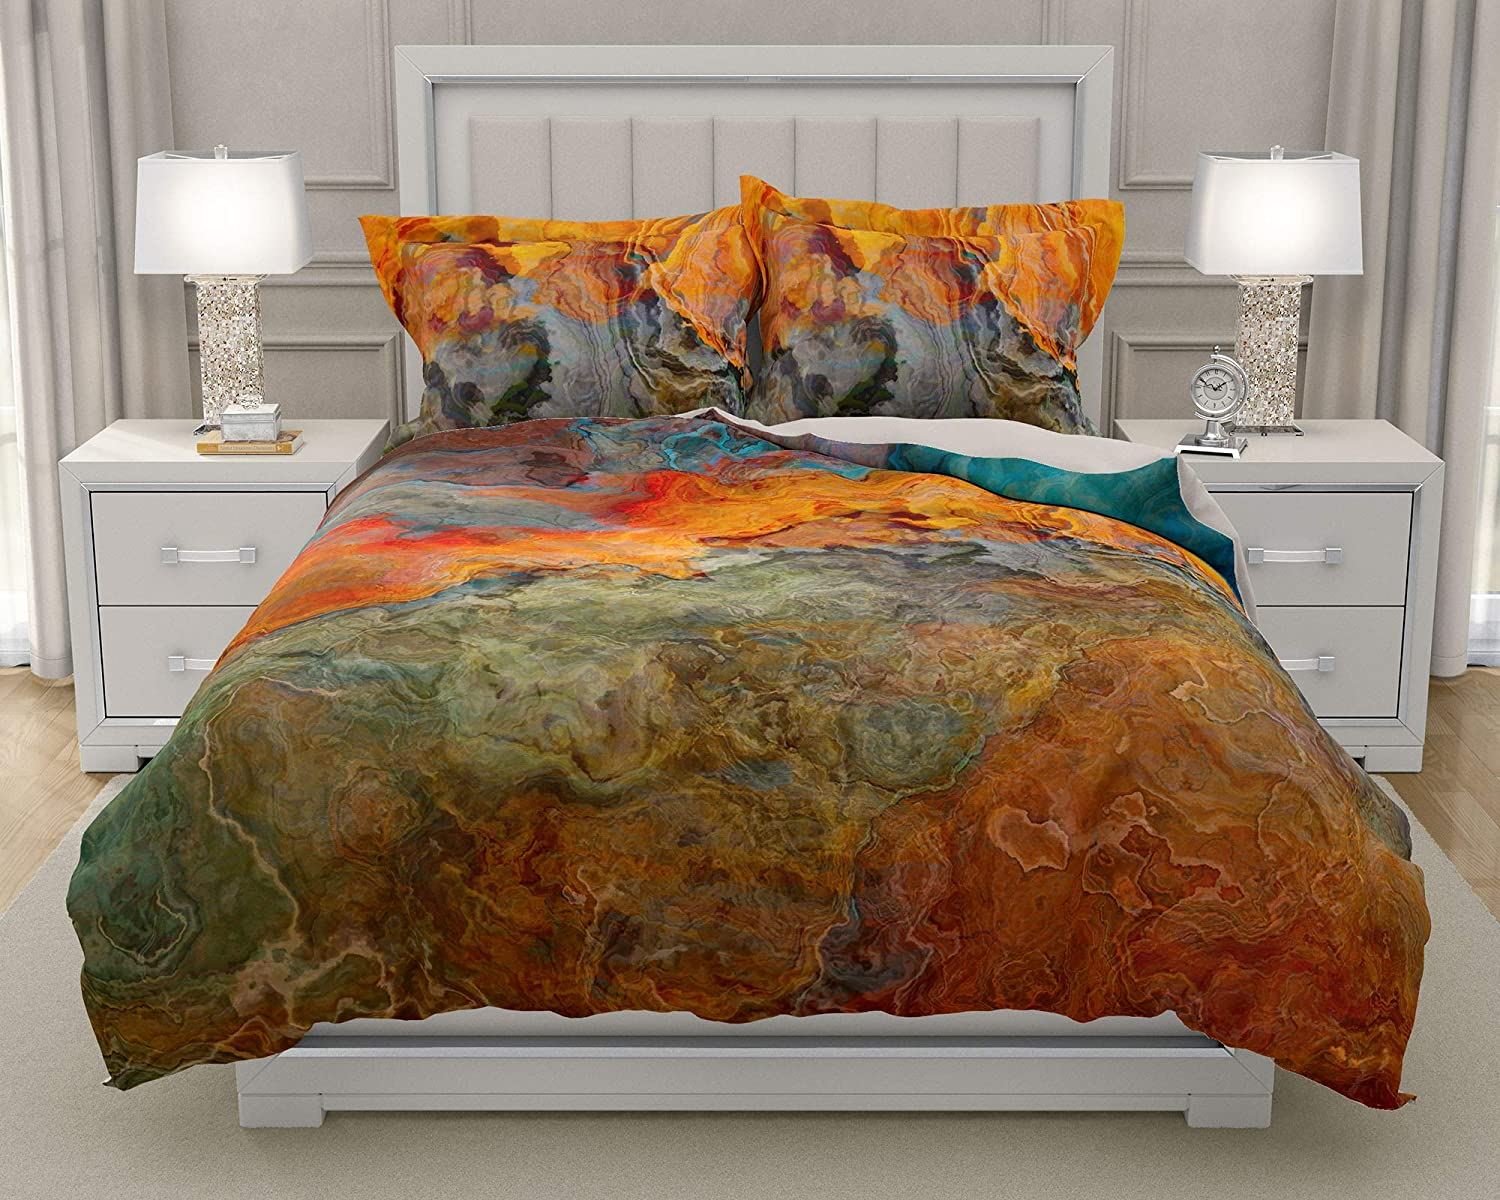 Image of King or Queen 3 pc Duvet Cover Set with abstract art, Copper River